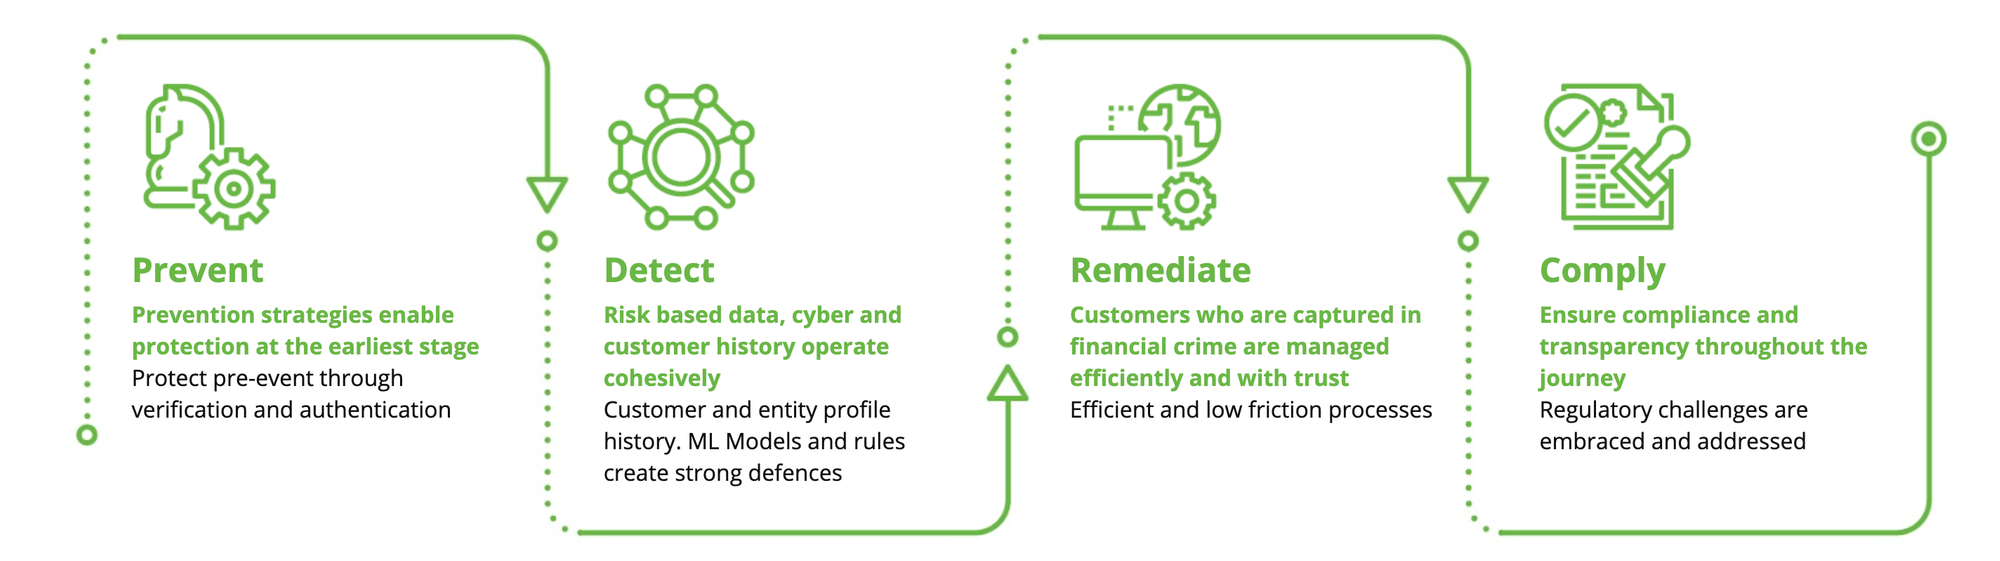 Feedai's approach to fighting financial crime: prevent, detect, remediate, comply